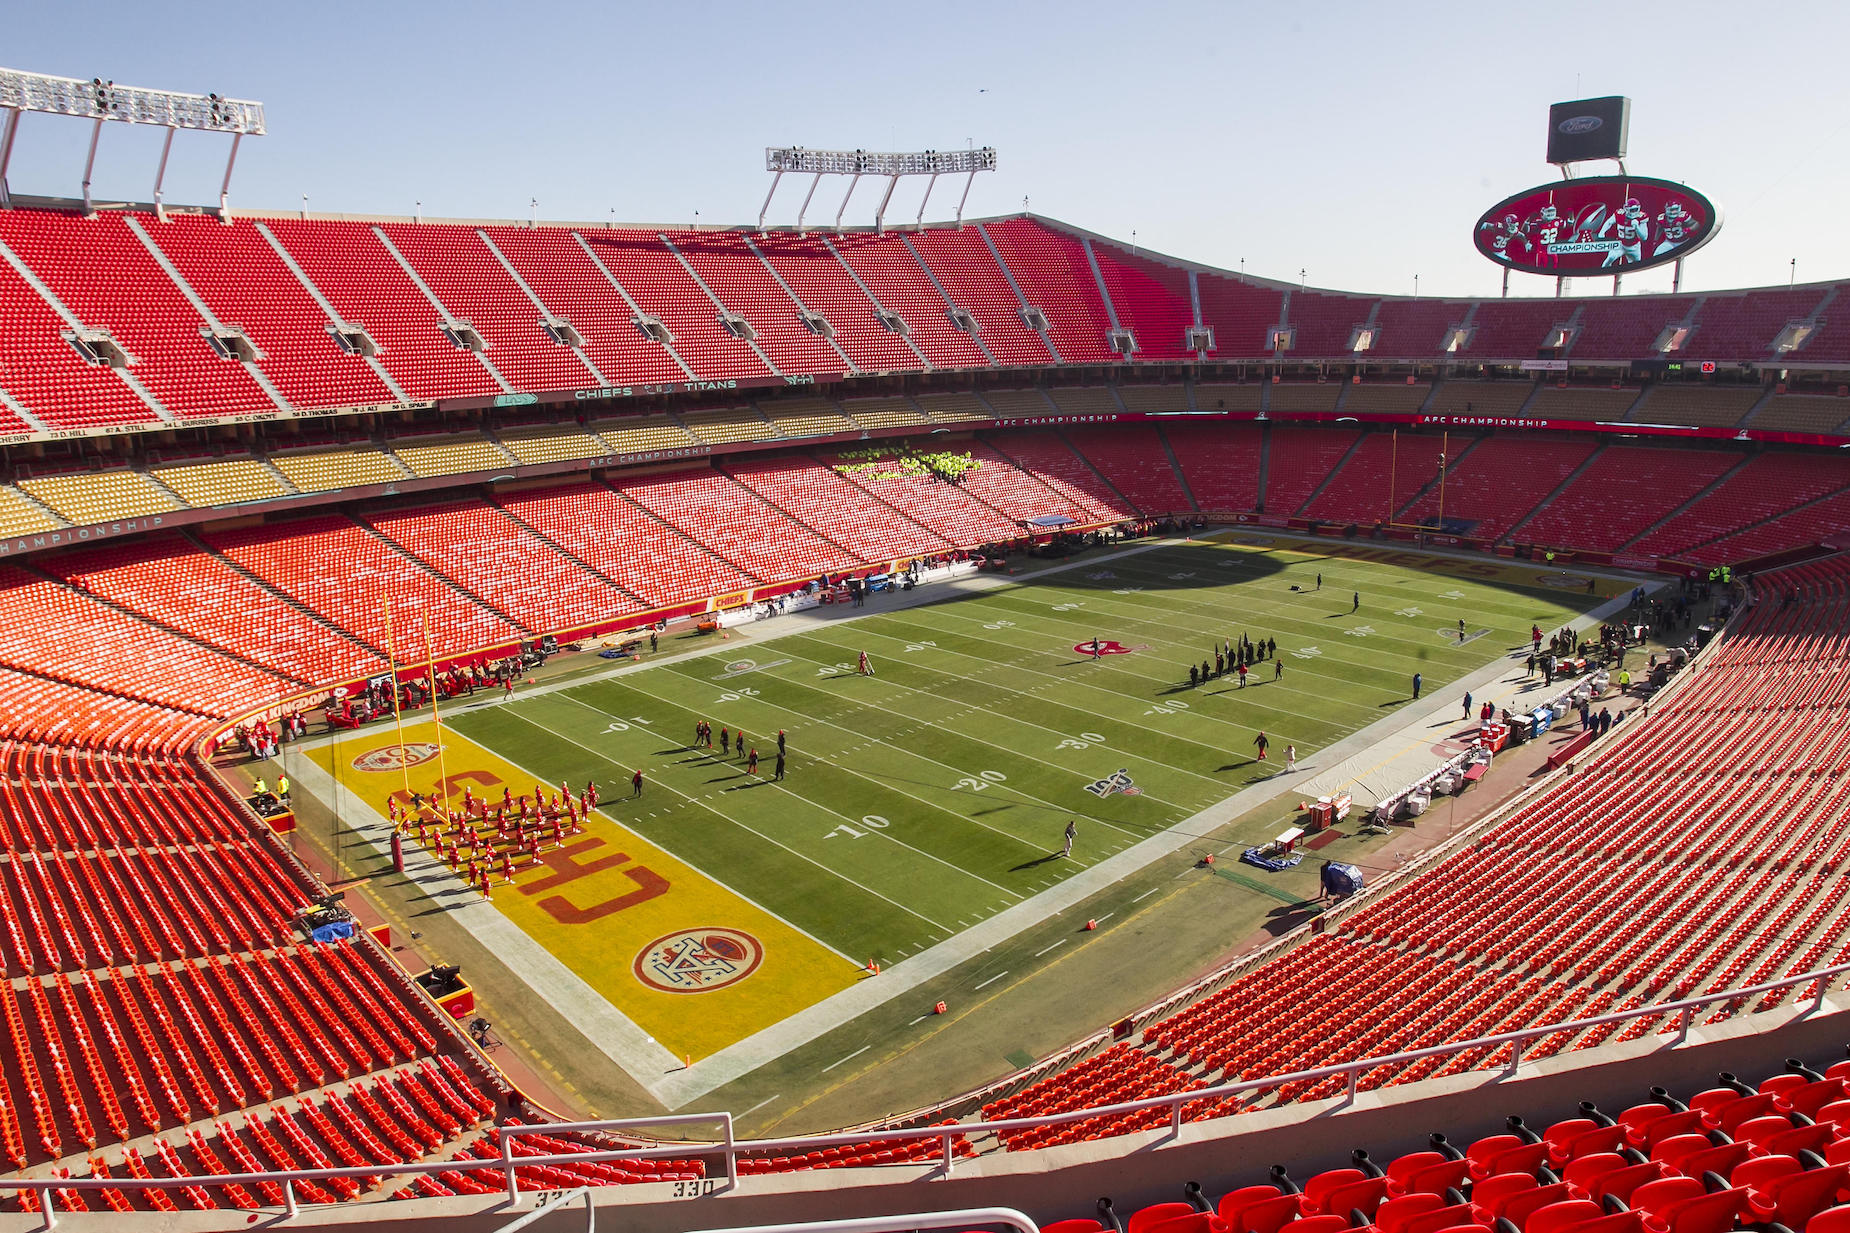 Based on the Kansas City Chiefs open practice, having in-stadium NFL fans will be easier said than done in 2020.